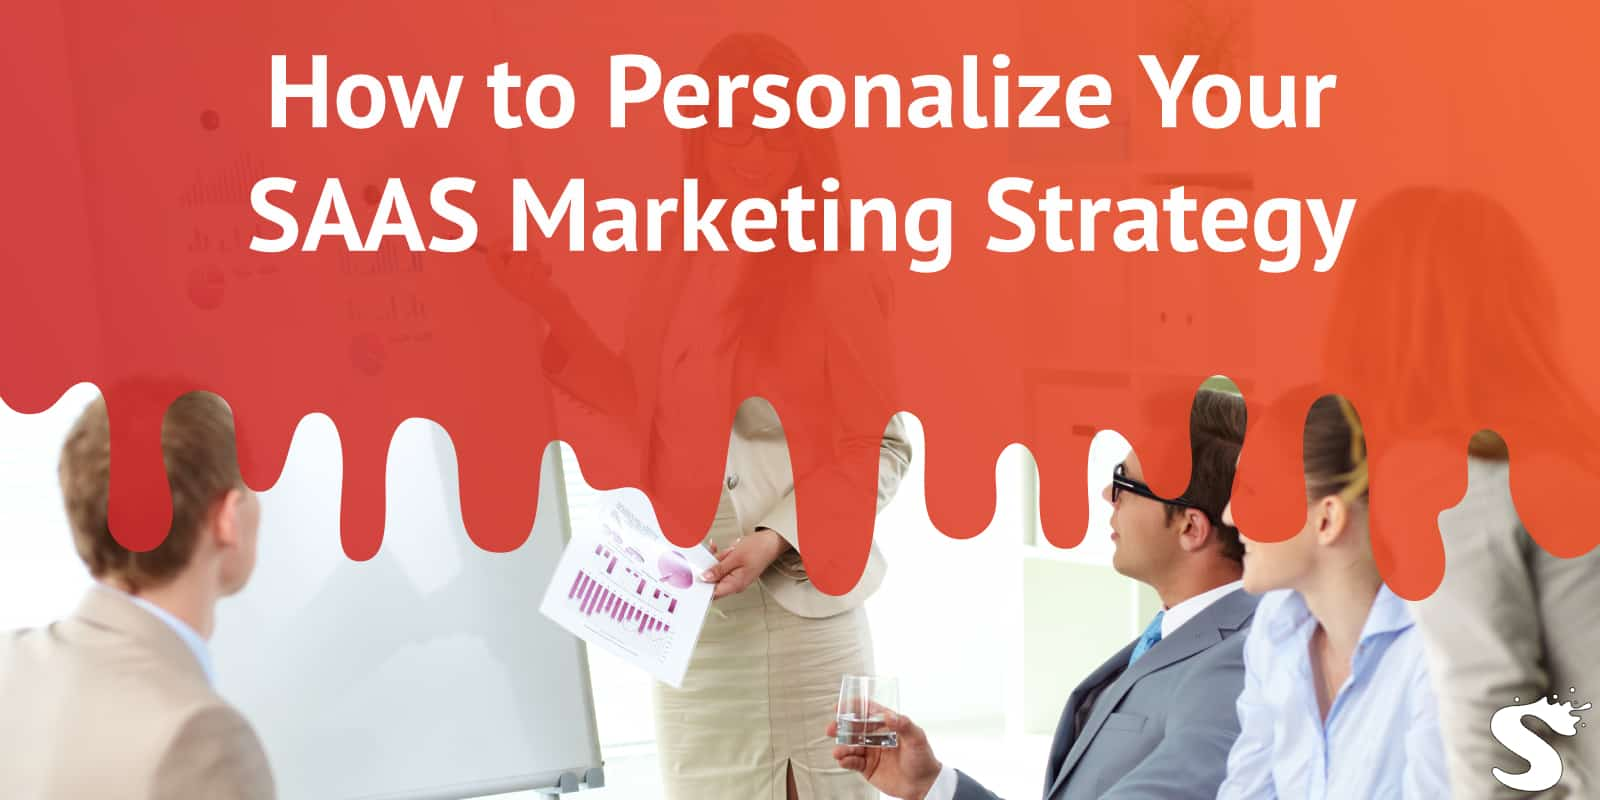 Personalize Saas marketing strategy